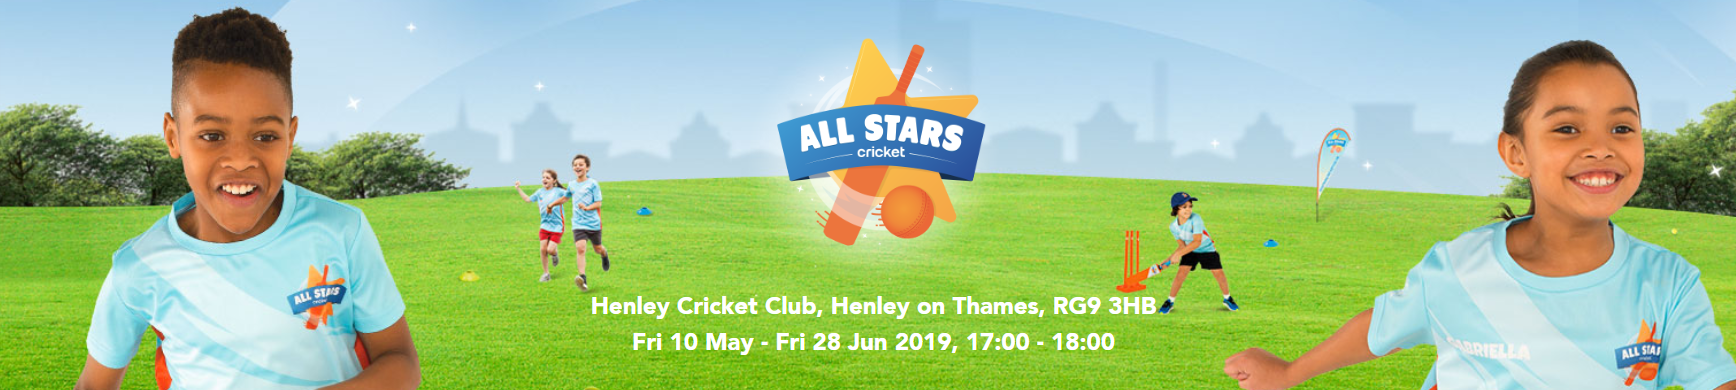 All Star Cricket Comes to Henley Cricket Club